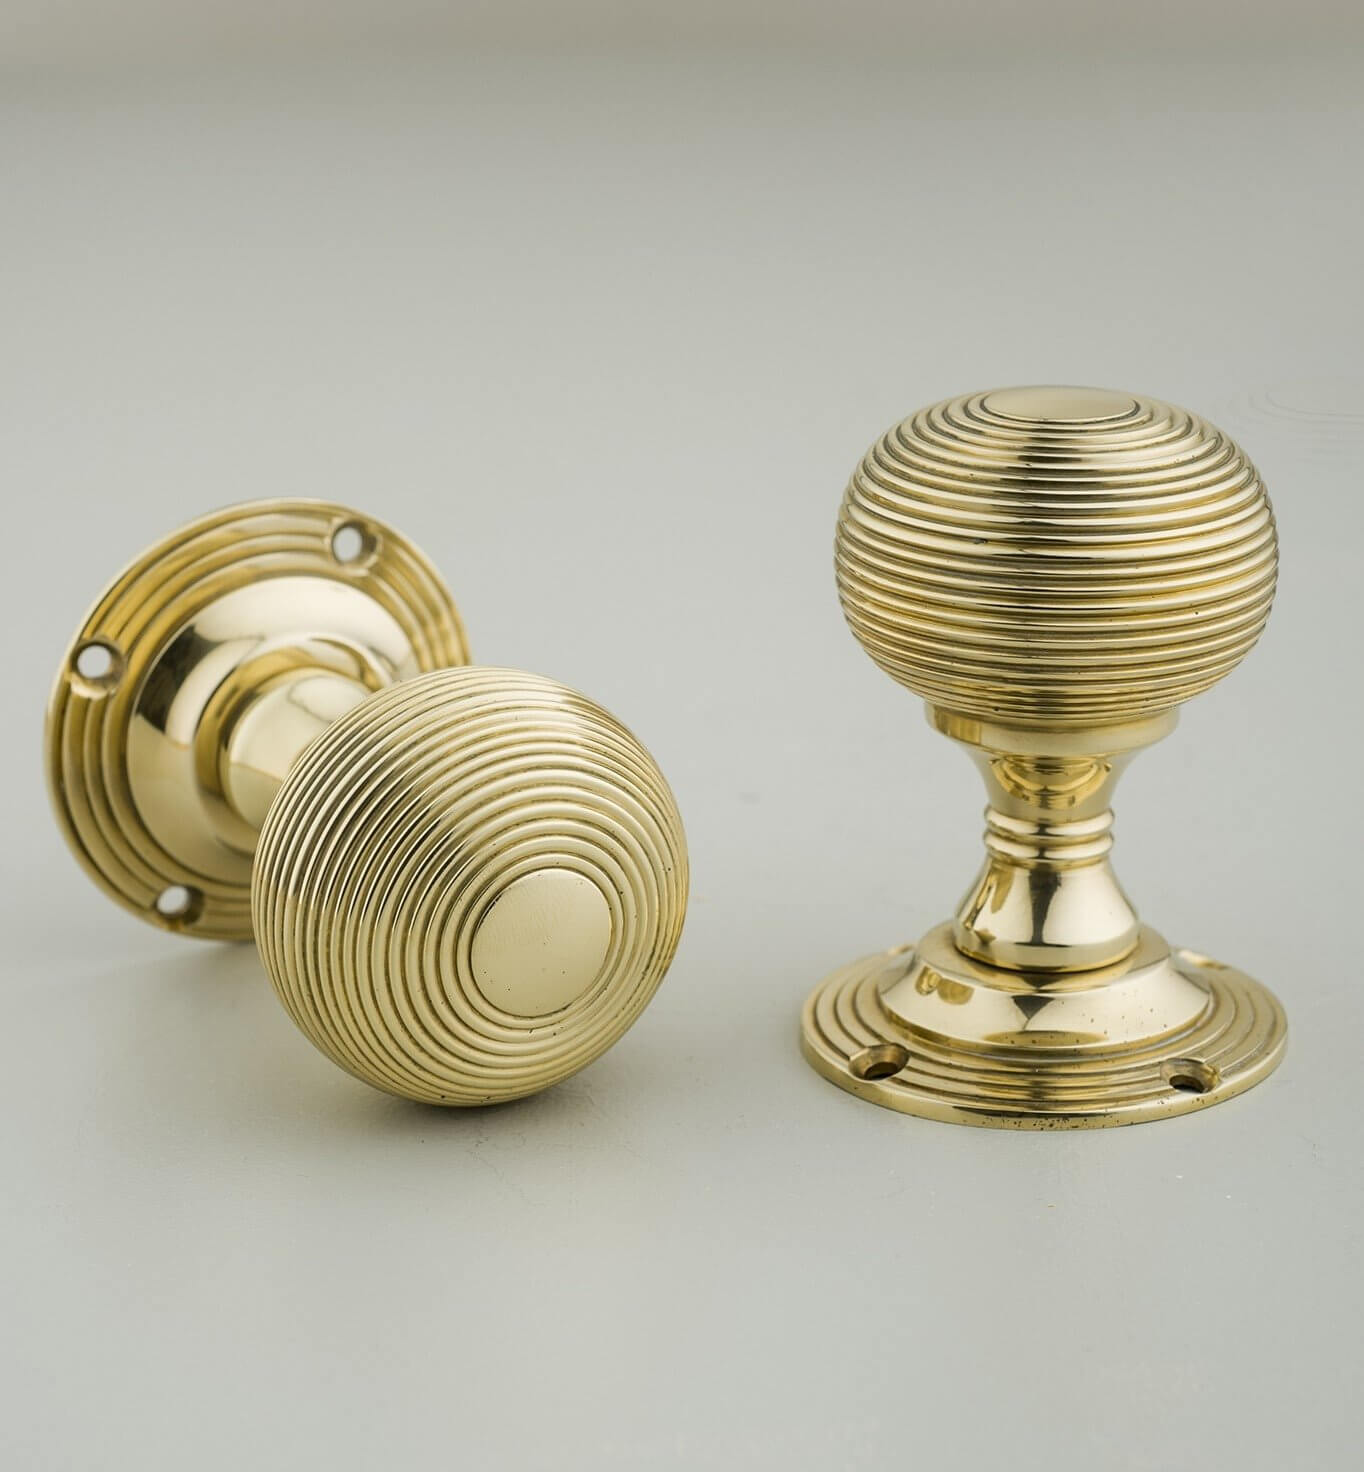 Beehive Empire Door Knobs (Pair) - Brass SAVE 15%